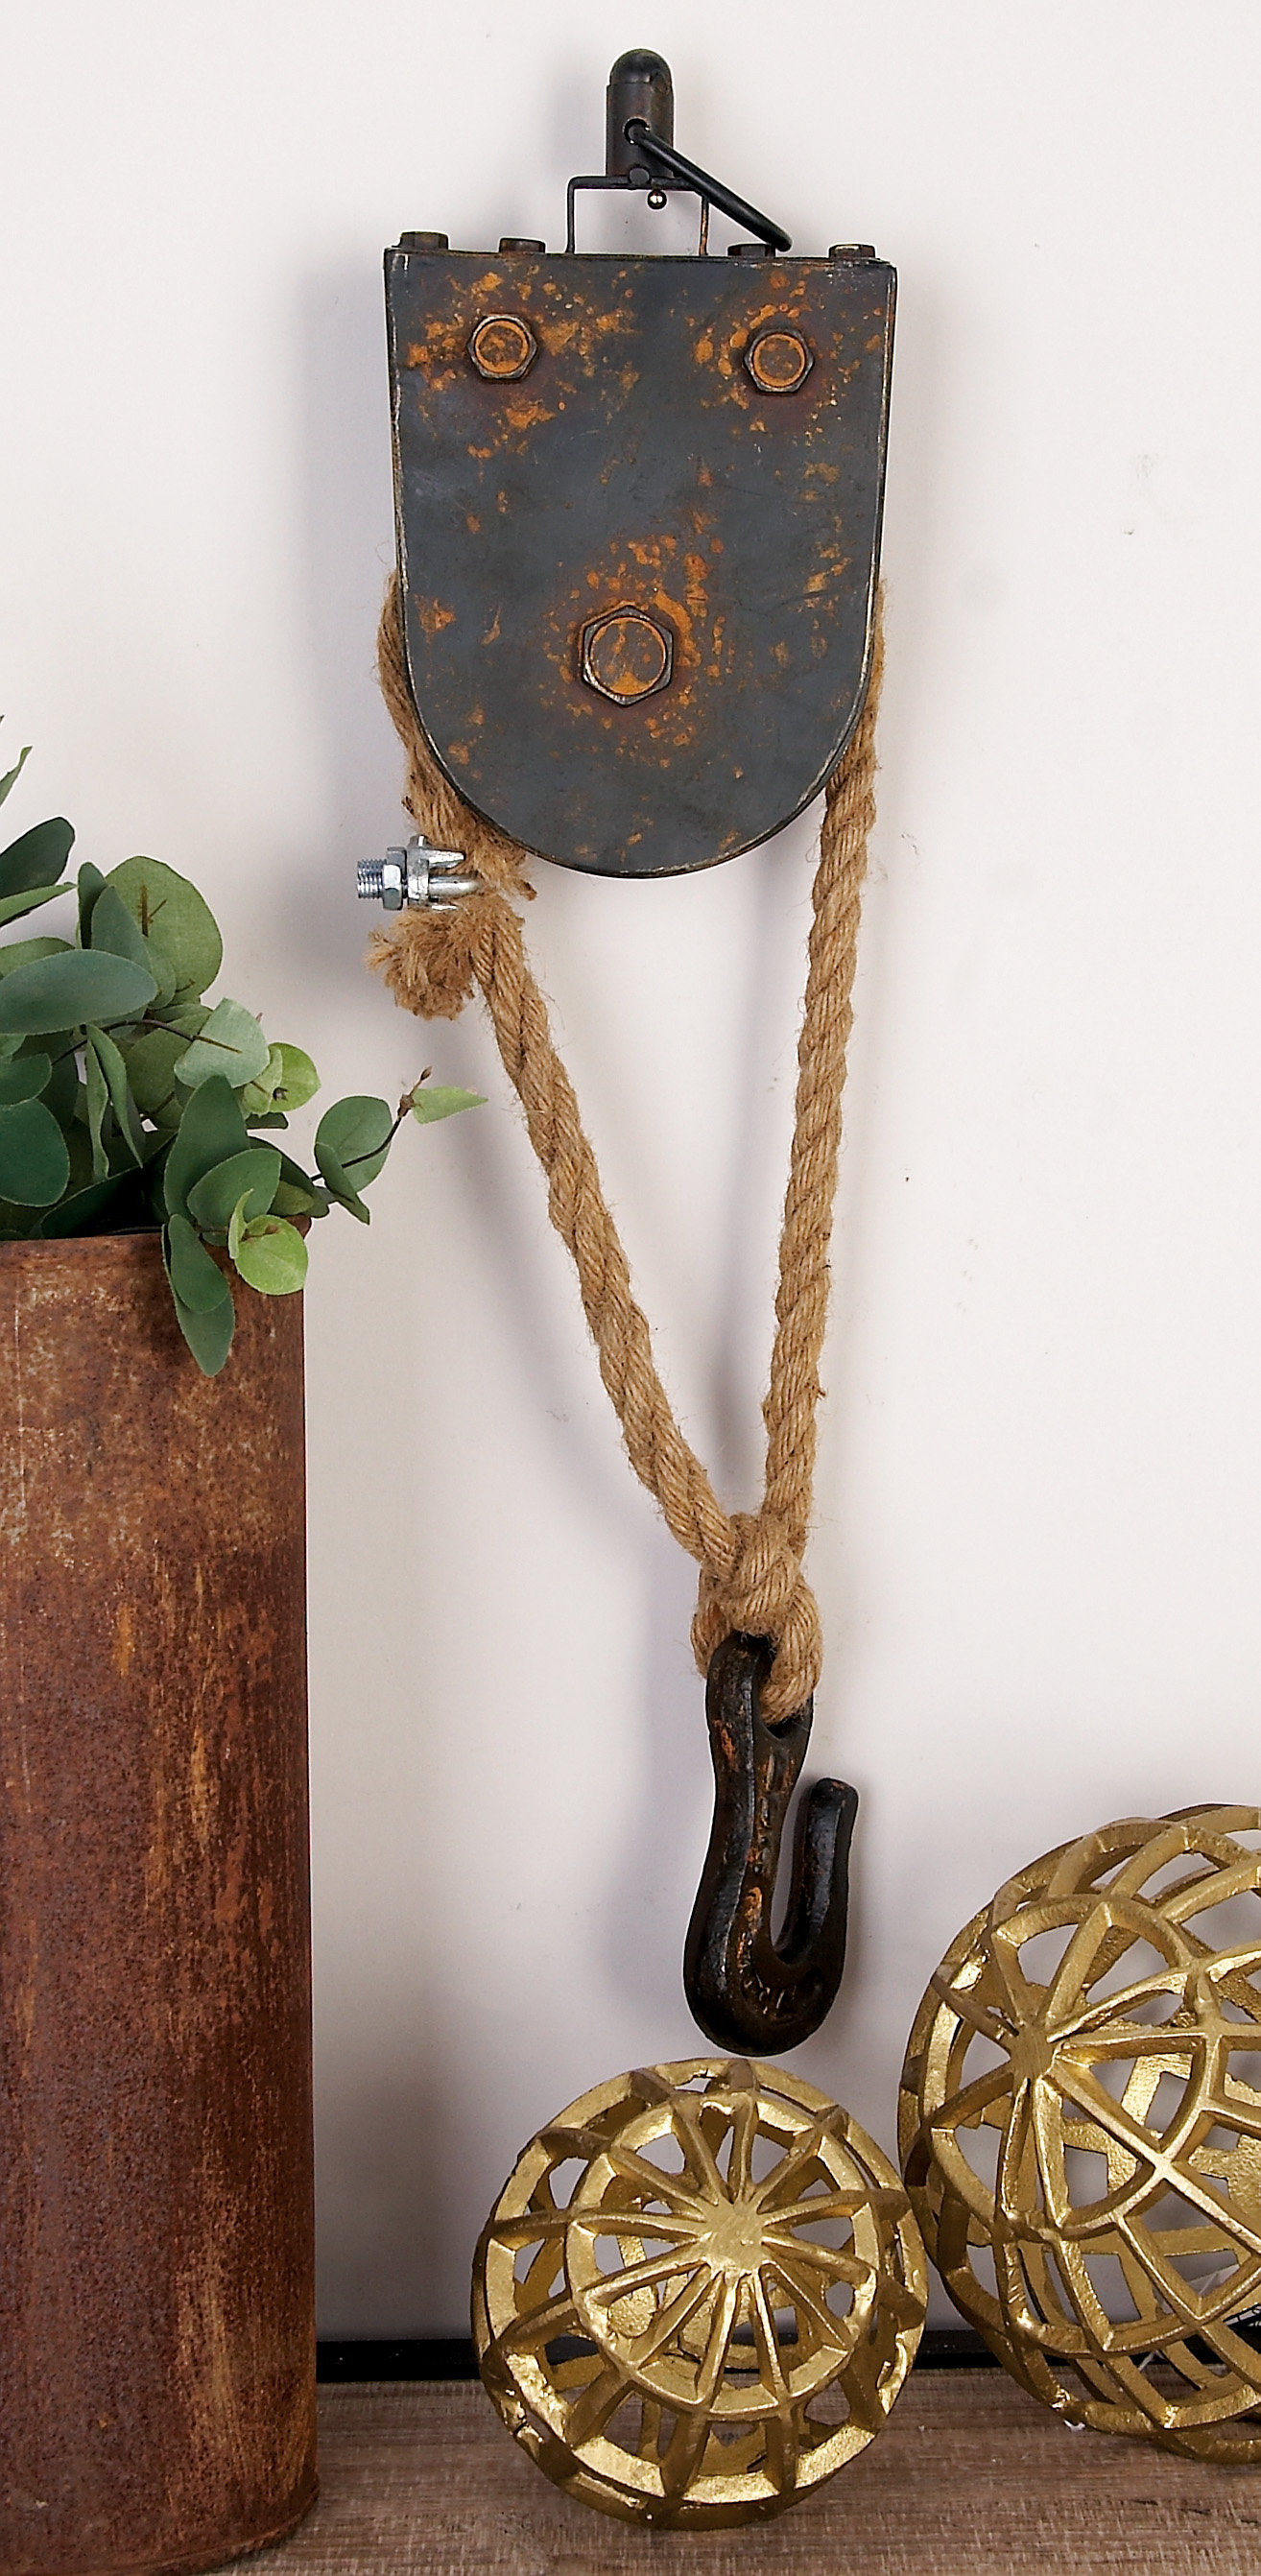 Metal Rope Block Tackle Wall Décor Inside Metal Rope Wall Sign Wall Decor (View 24 of 30)